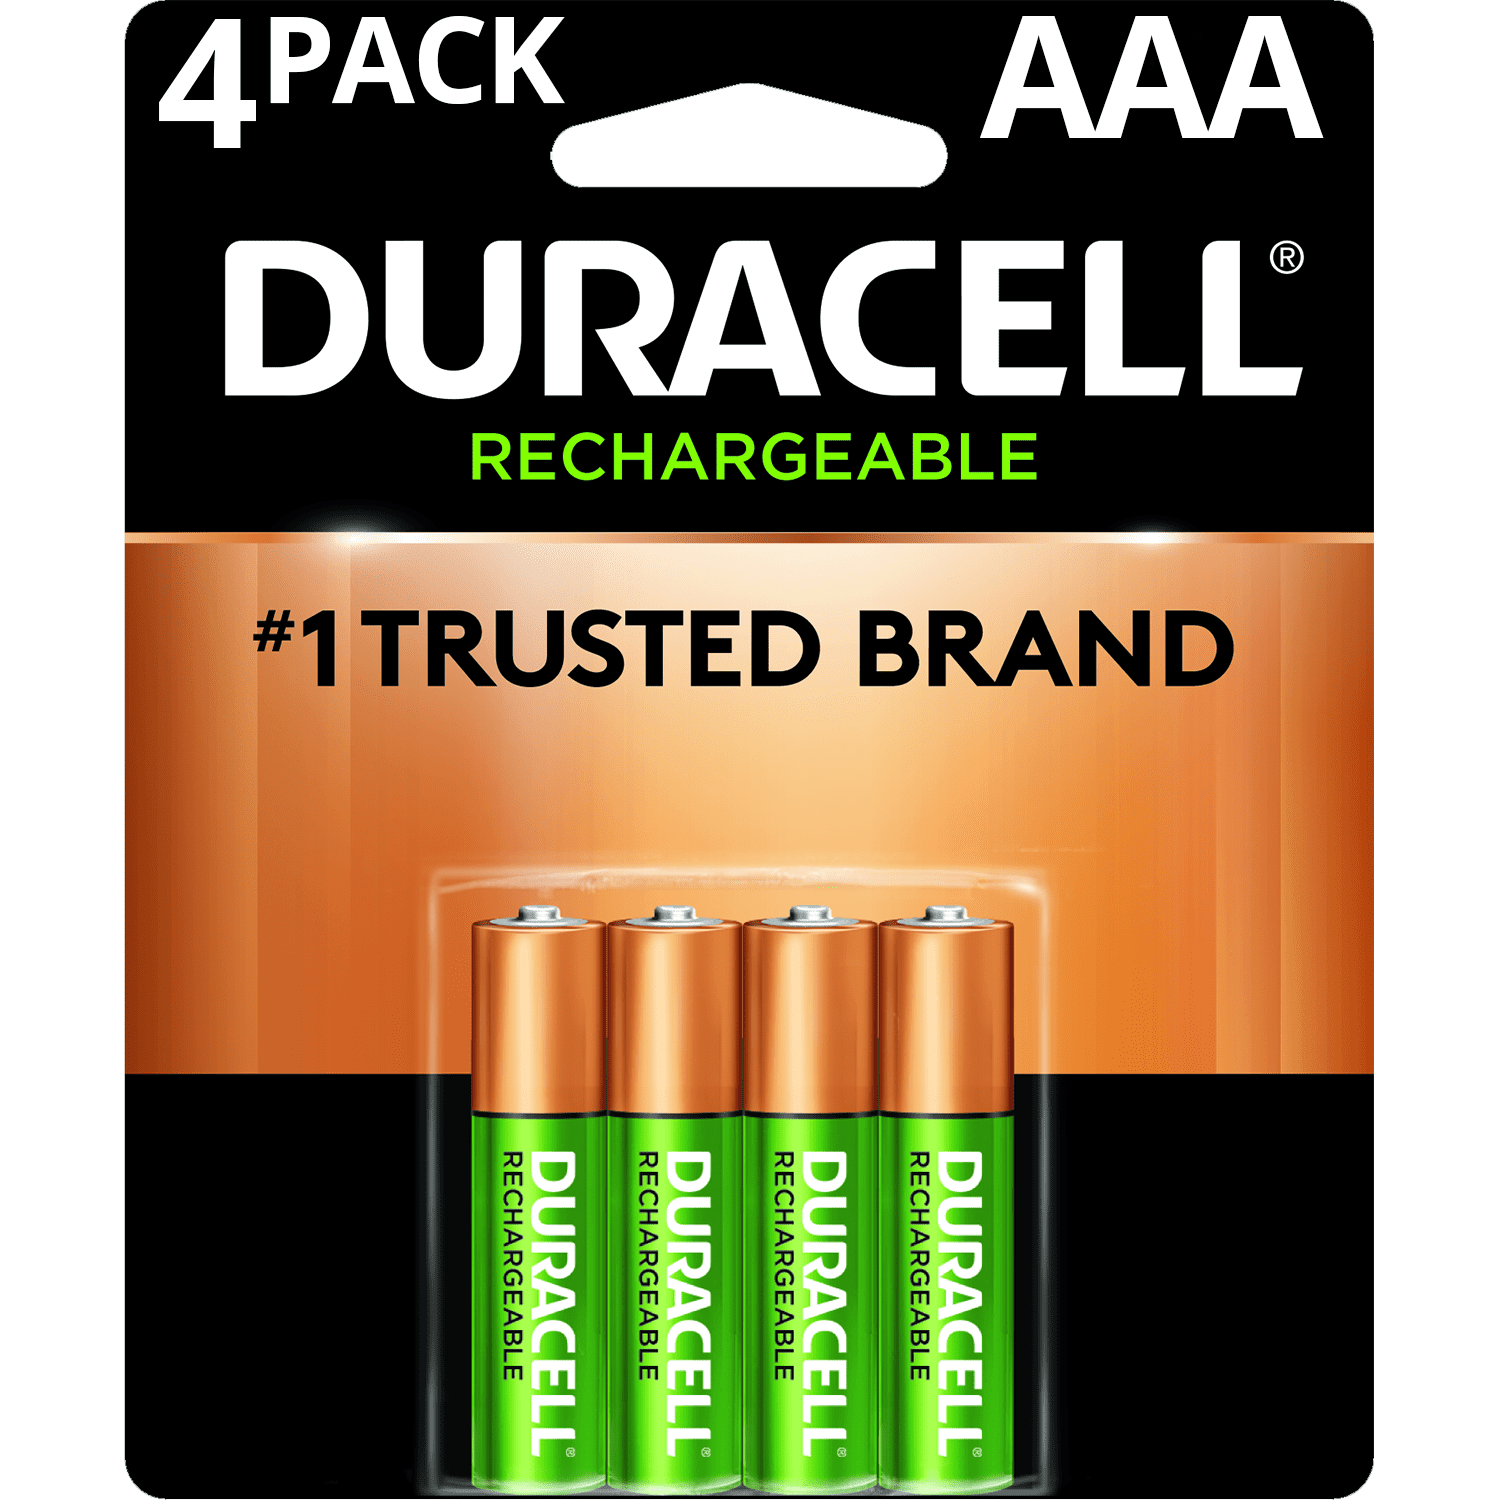 Duracell 1.2V Rechargeable AAA Batteries, 4 Pack